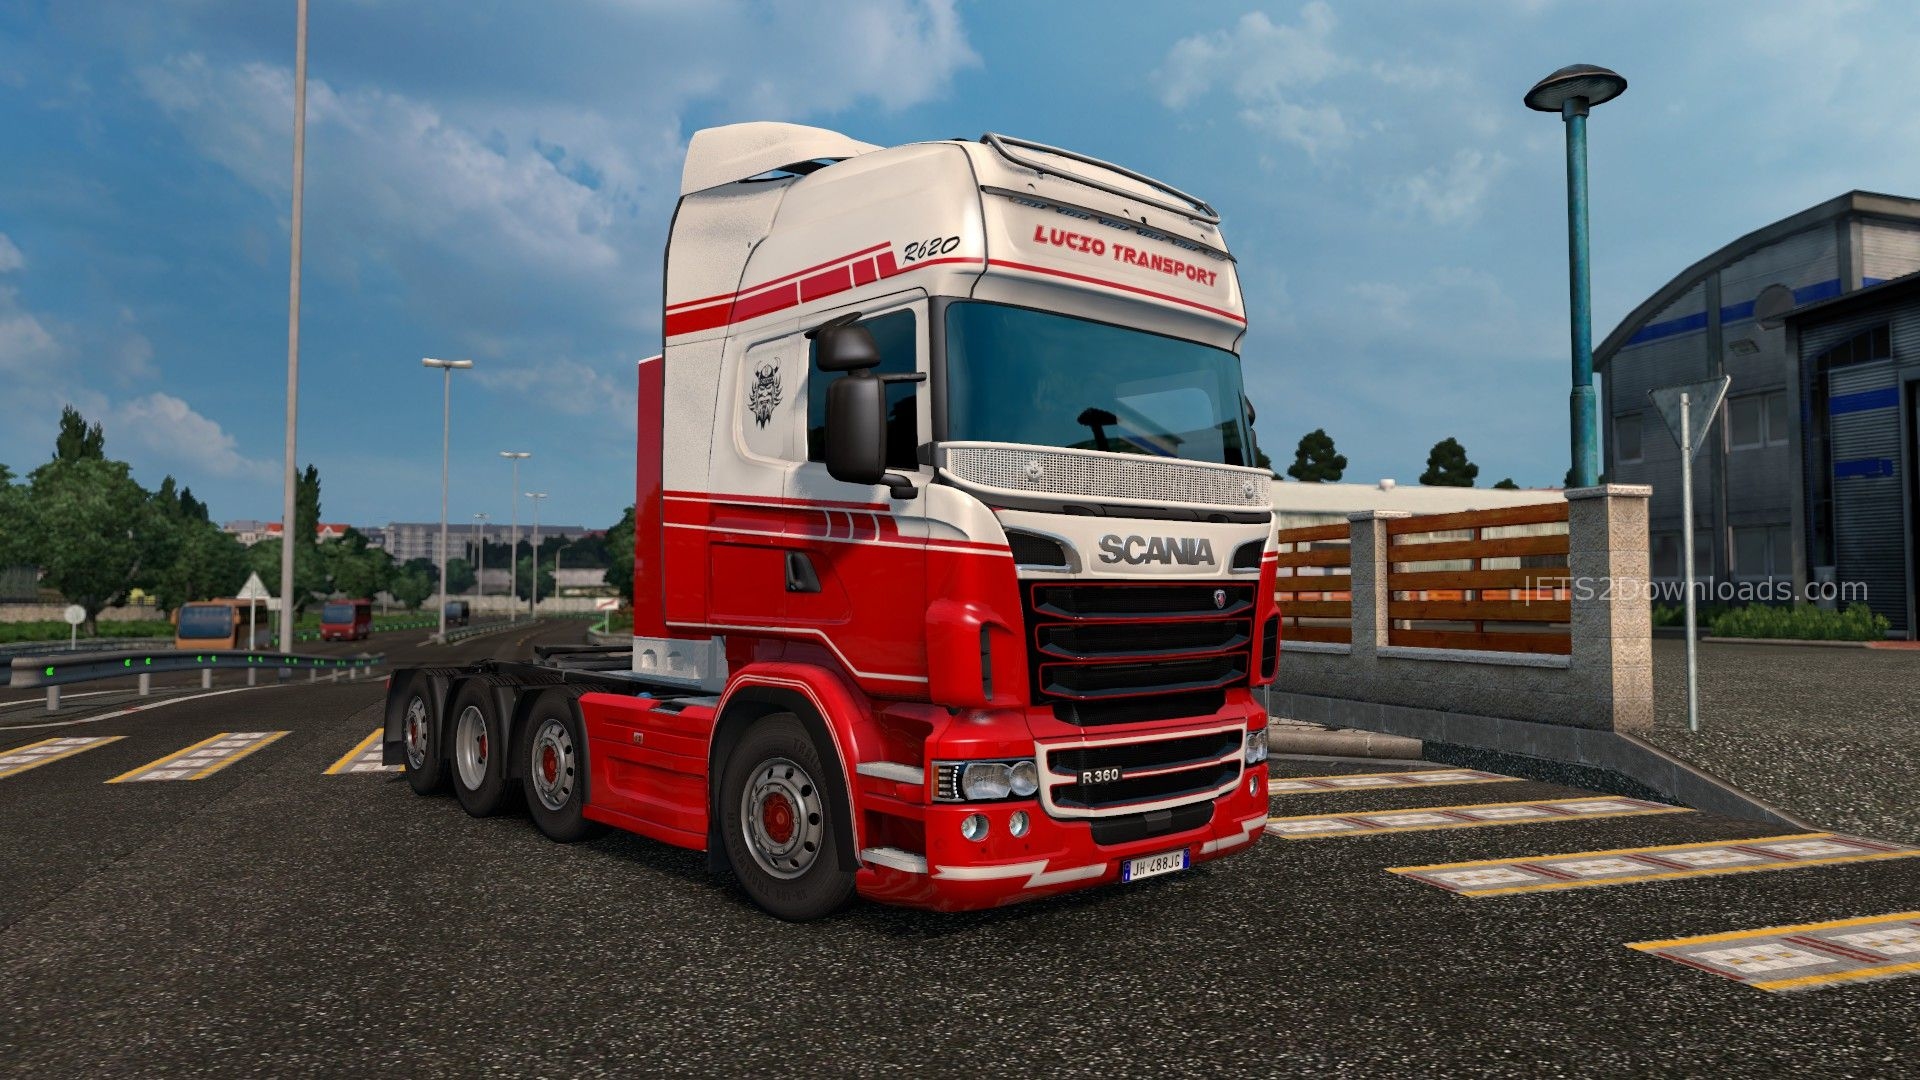 lucio-transport-skin-for-scania-rjl